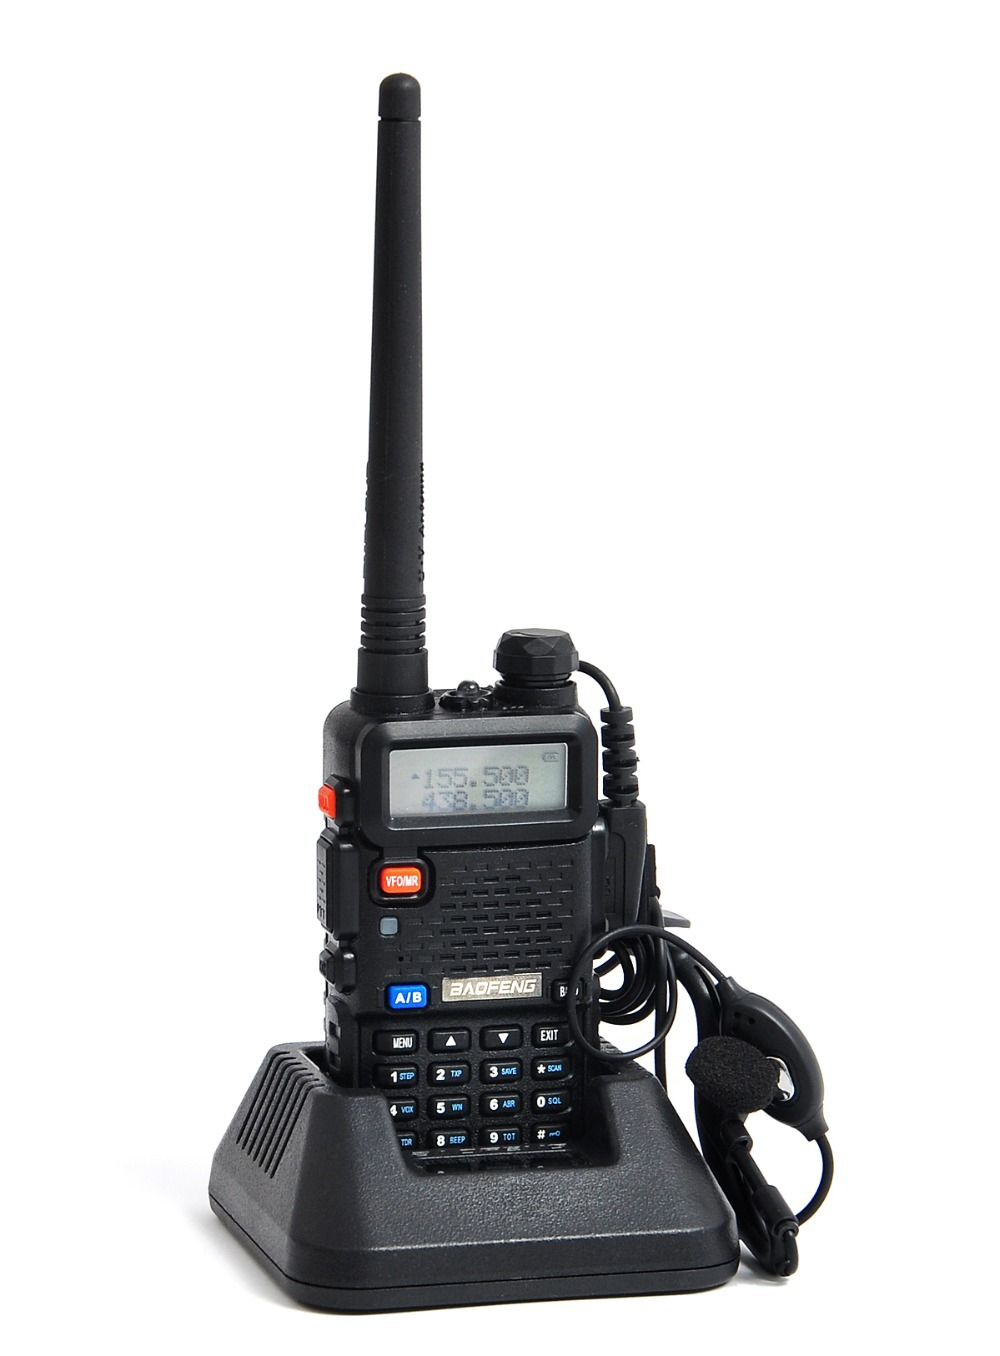 New BaoFeng UV-5R Portable Radio UV 5R Walkie Talkie 5W Dual Band VHF&UHF 136-174Mhz & 400-520Mhz Two Way Radio UV5R A0850A